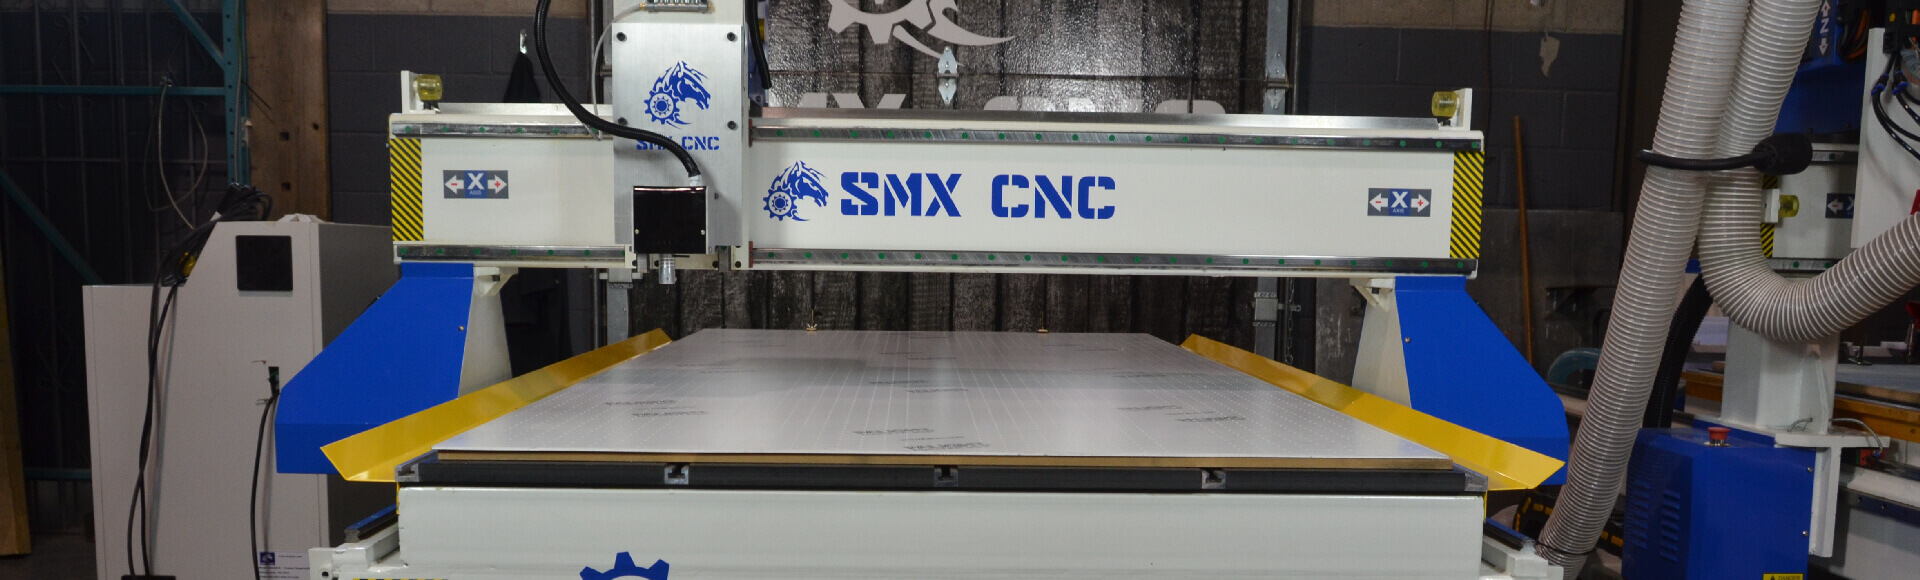 SMXCNC routers systems and laser